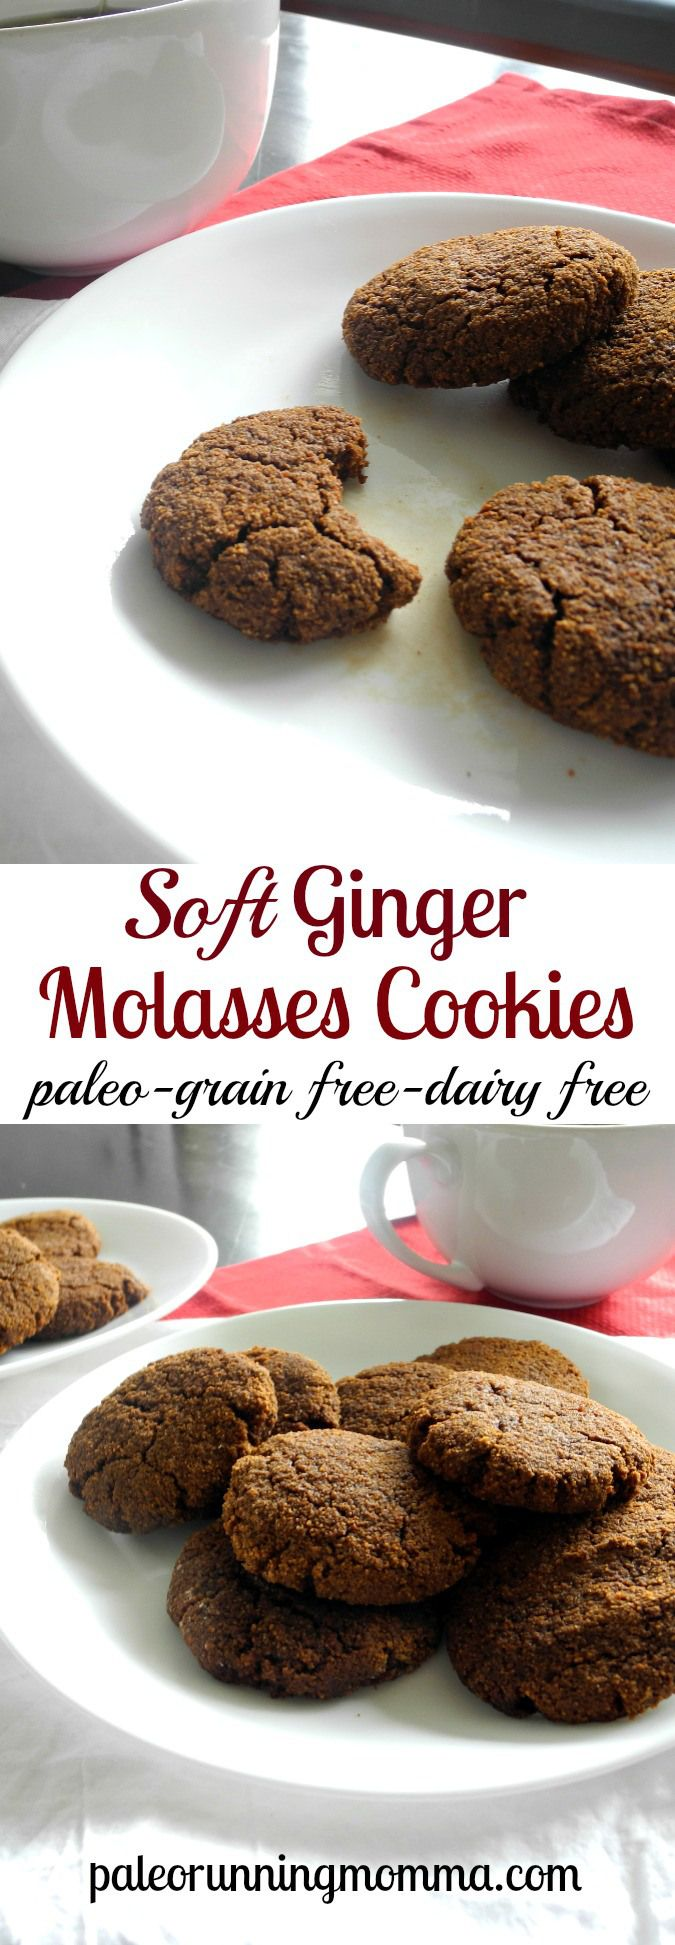 Soft Ginger Molasses Cookies - Grain free dairy free and paleo @paleorunmomma